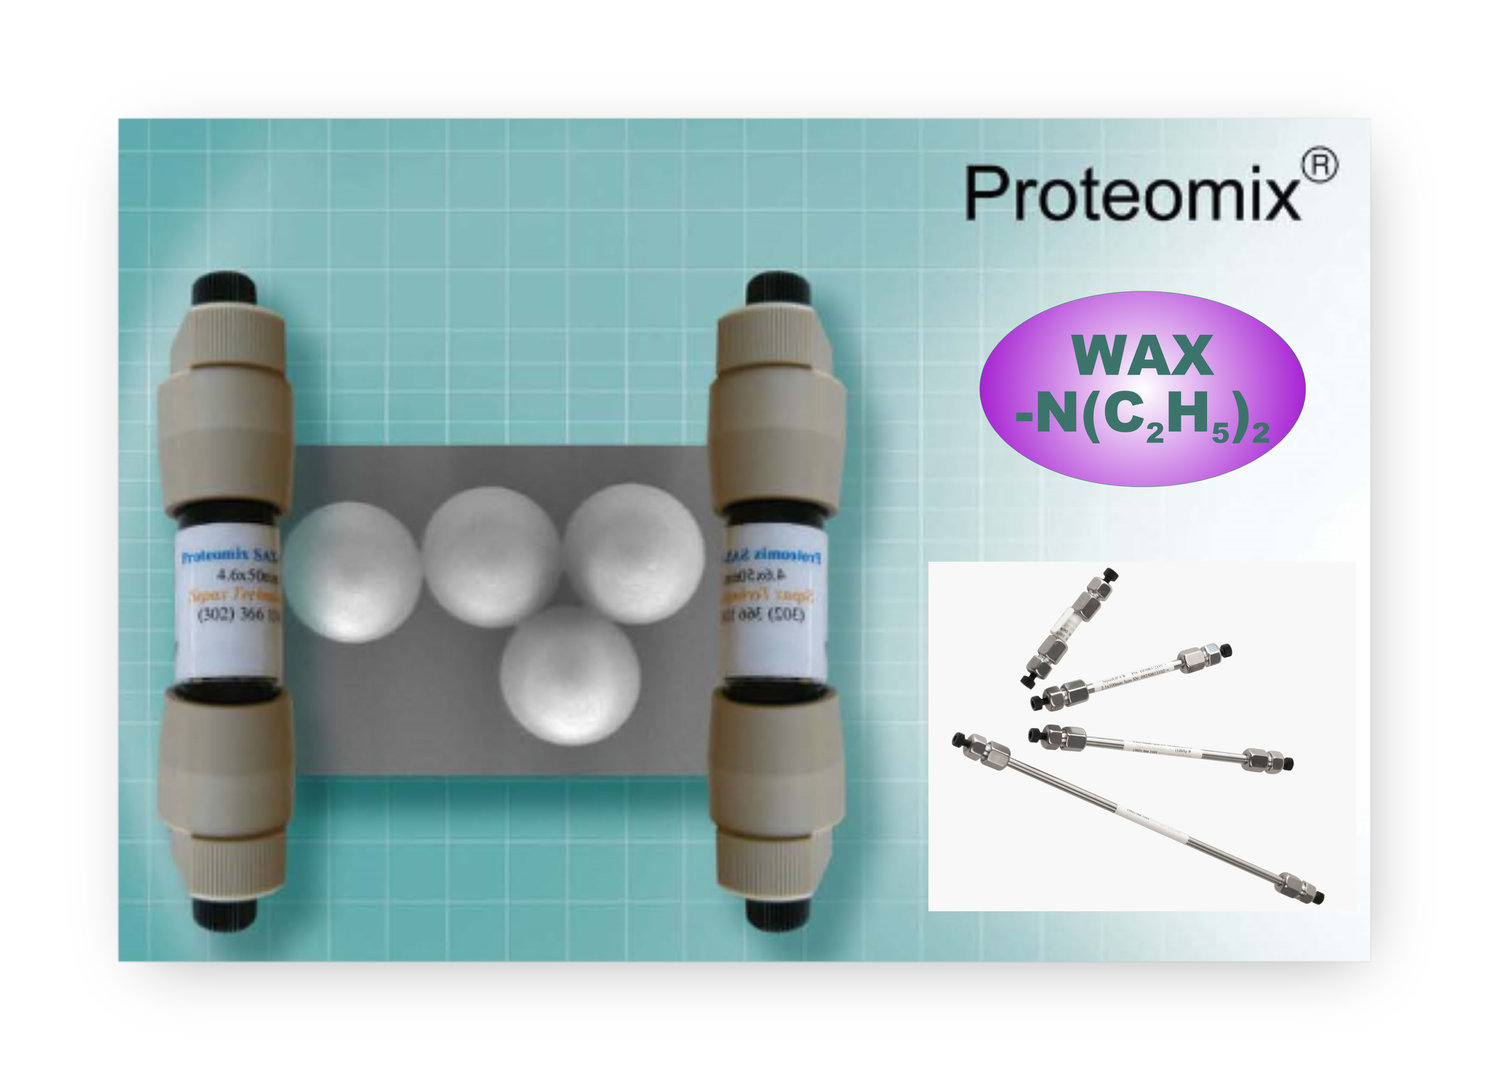 Sepax Proteomix WAX, NP10, Guard cartridge